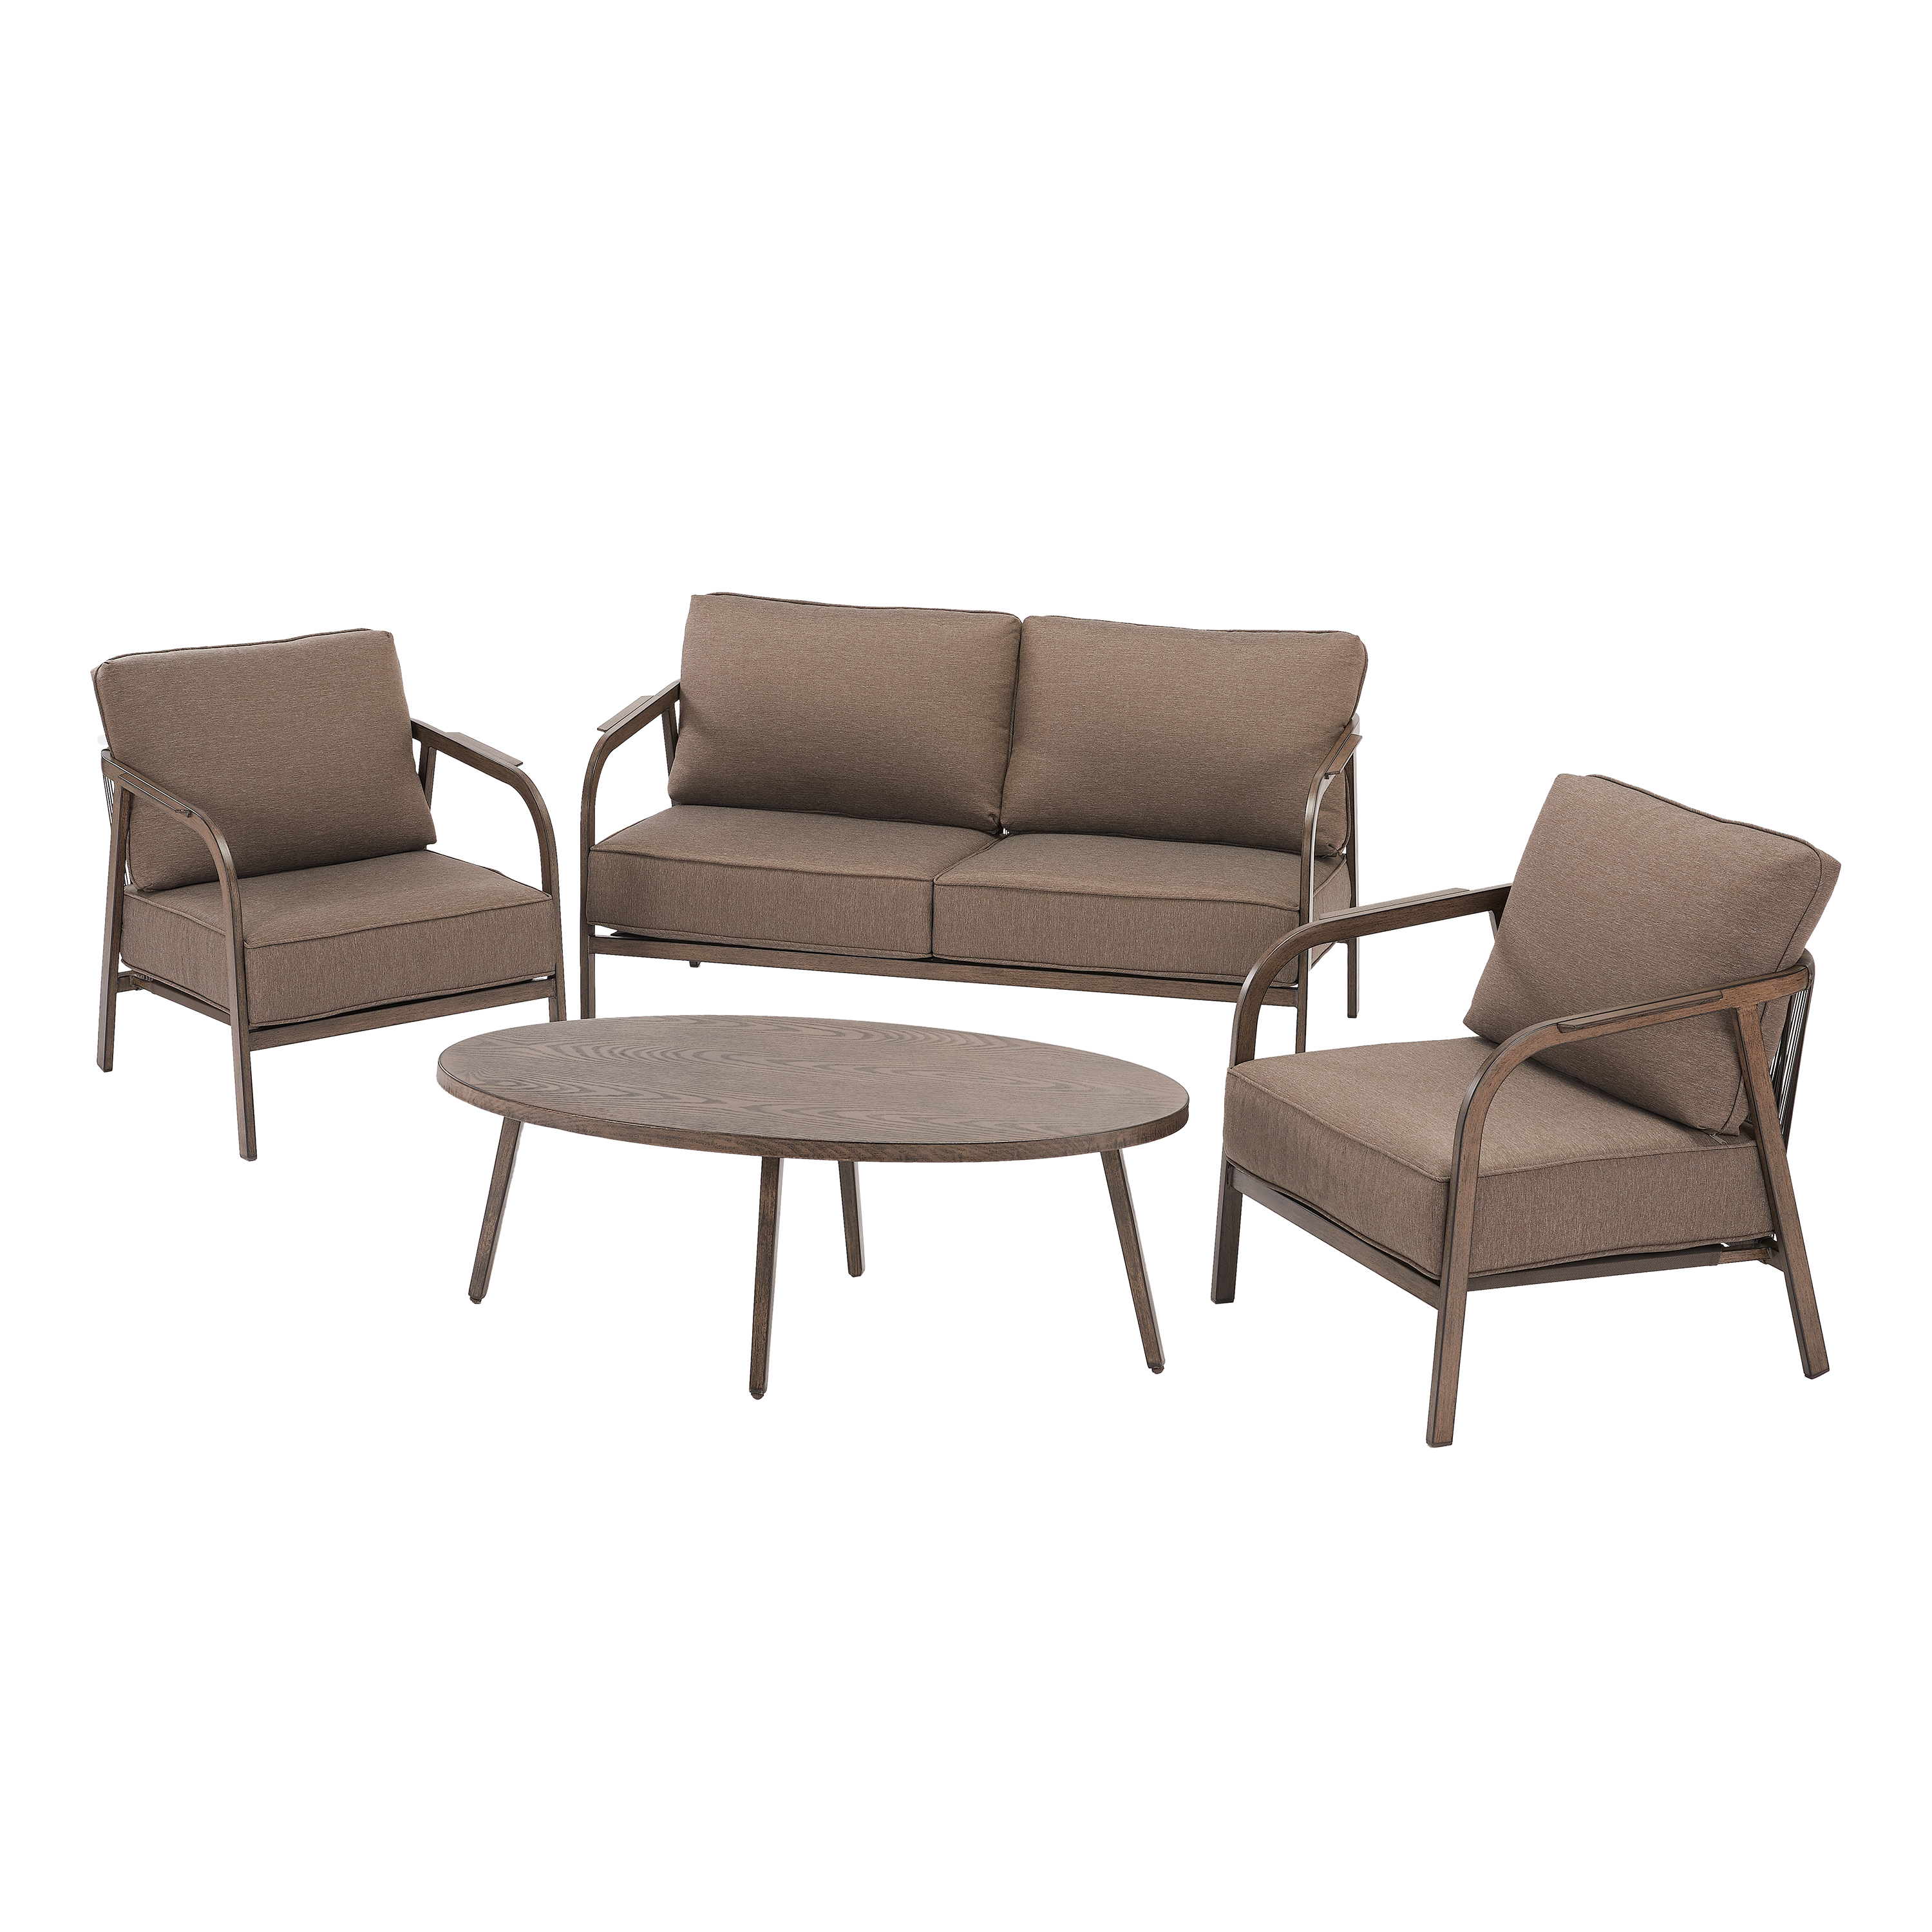 Tremendous Better Homes Gardens Arlo 4 Piece Patio Loveseat Set With Ocoug Best Dining Table And Chair Ideas Images Ocougorg